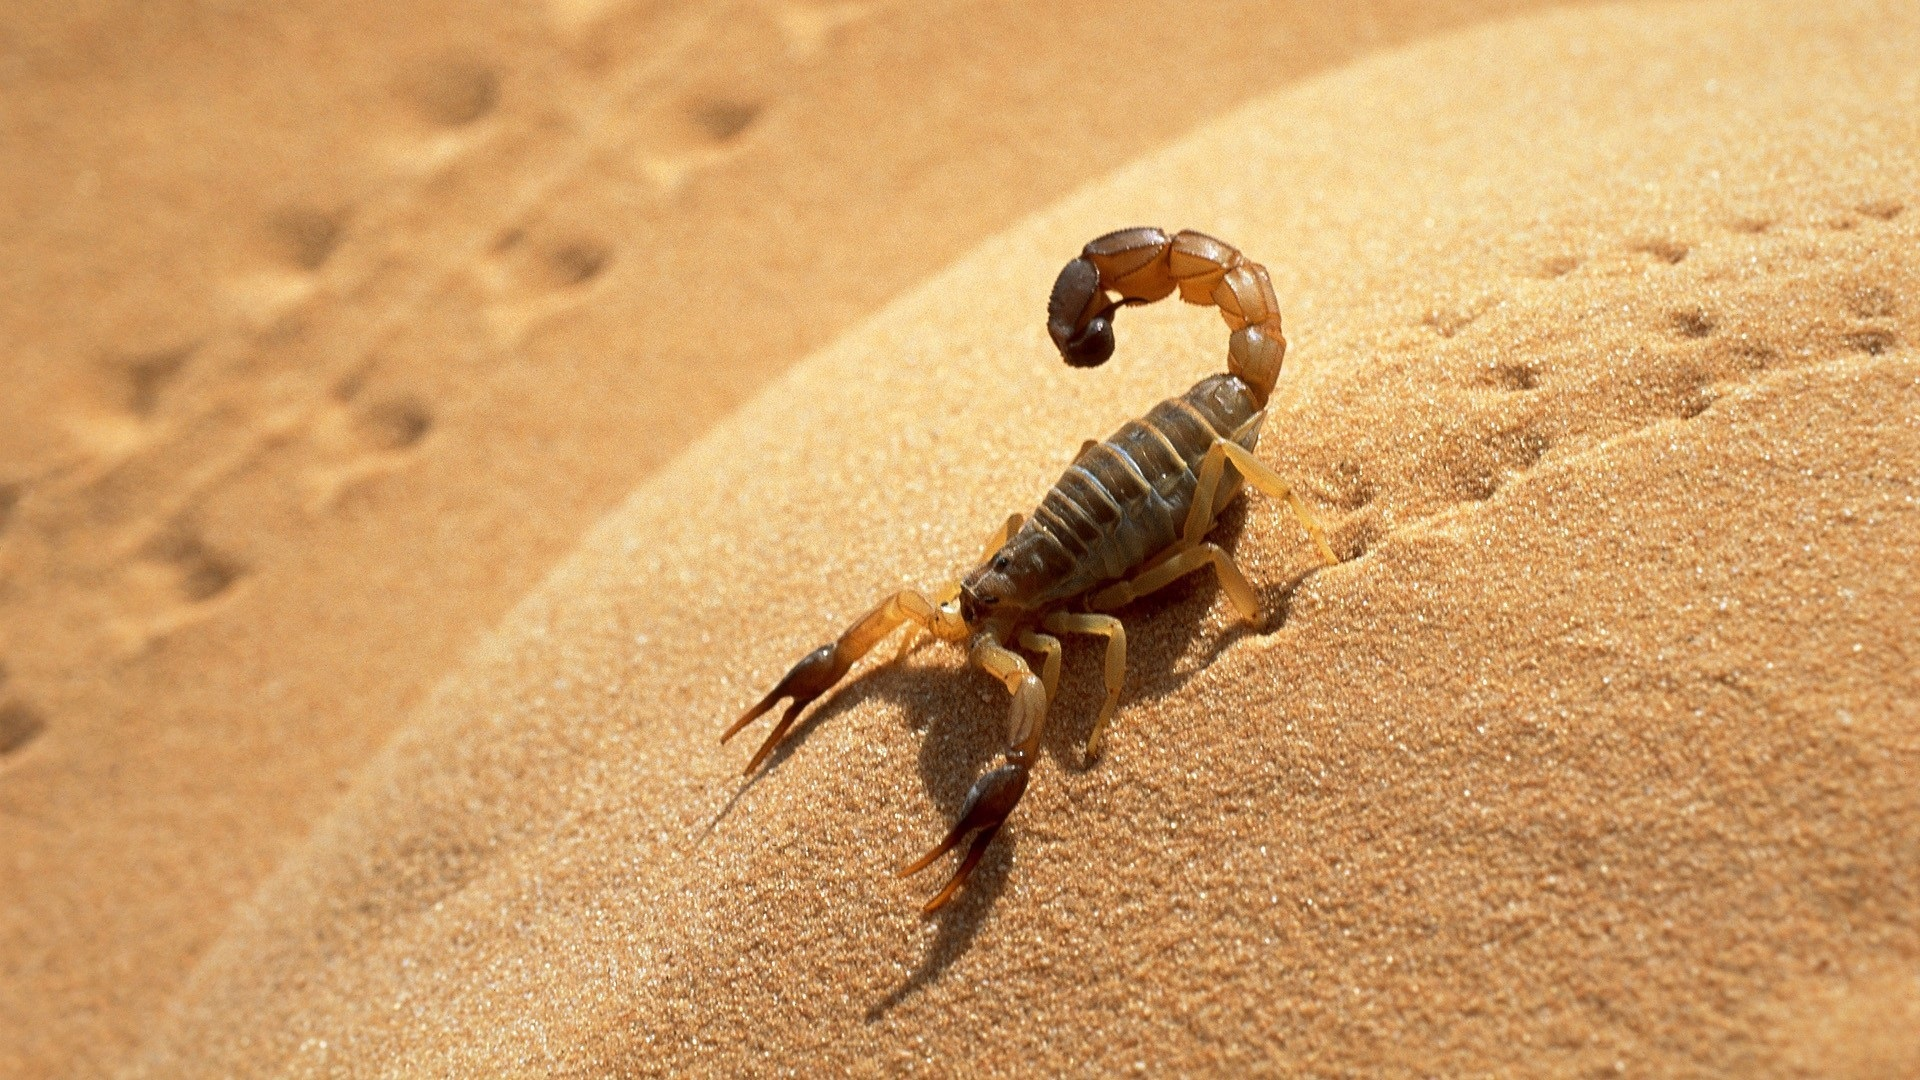 Scorpion Traces on Sand 108.66 Kb